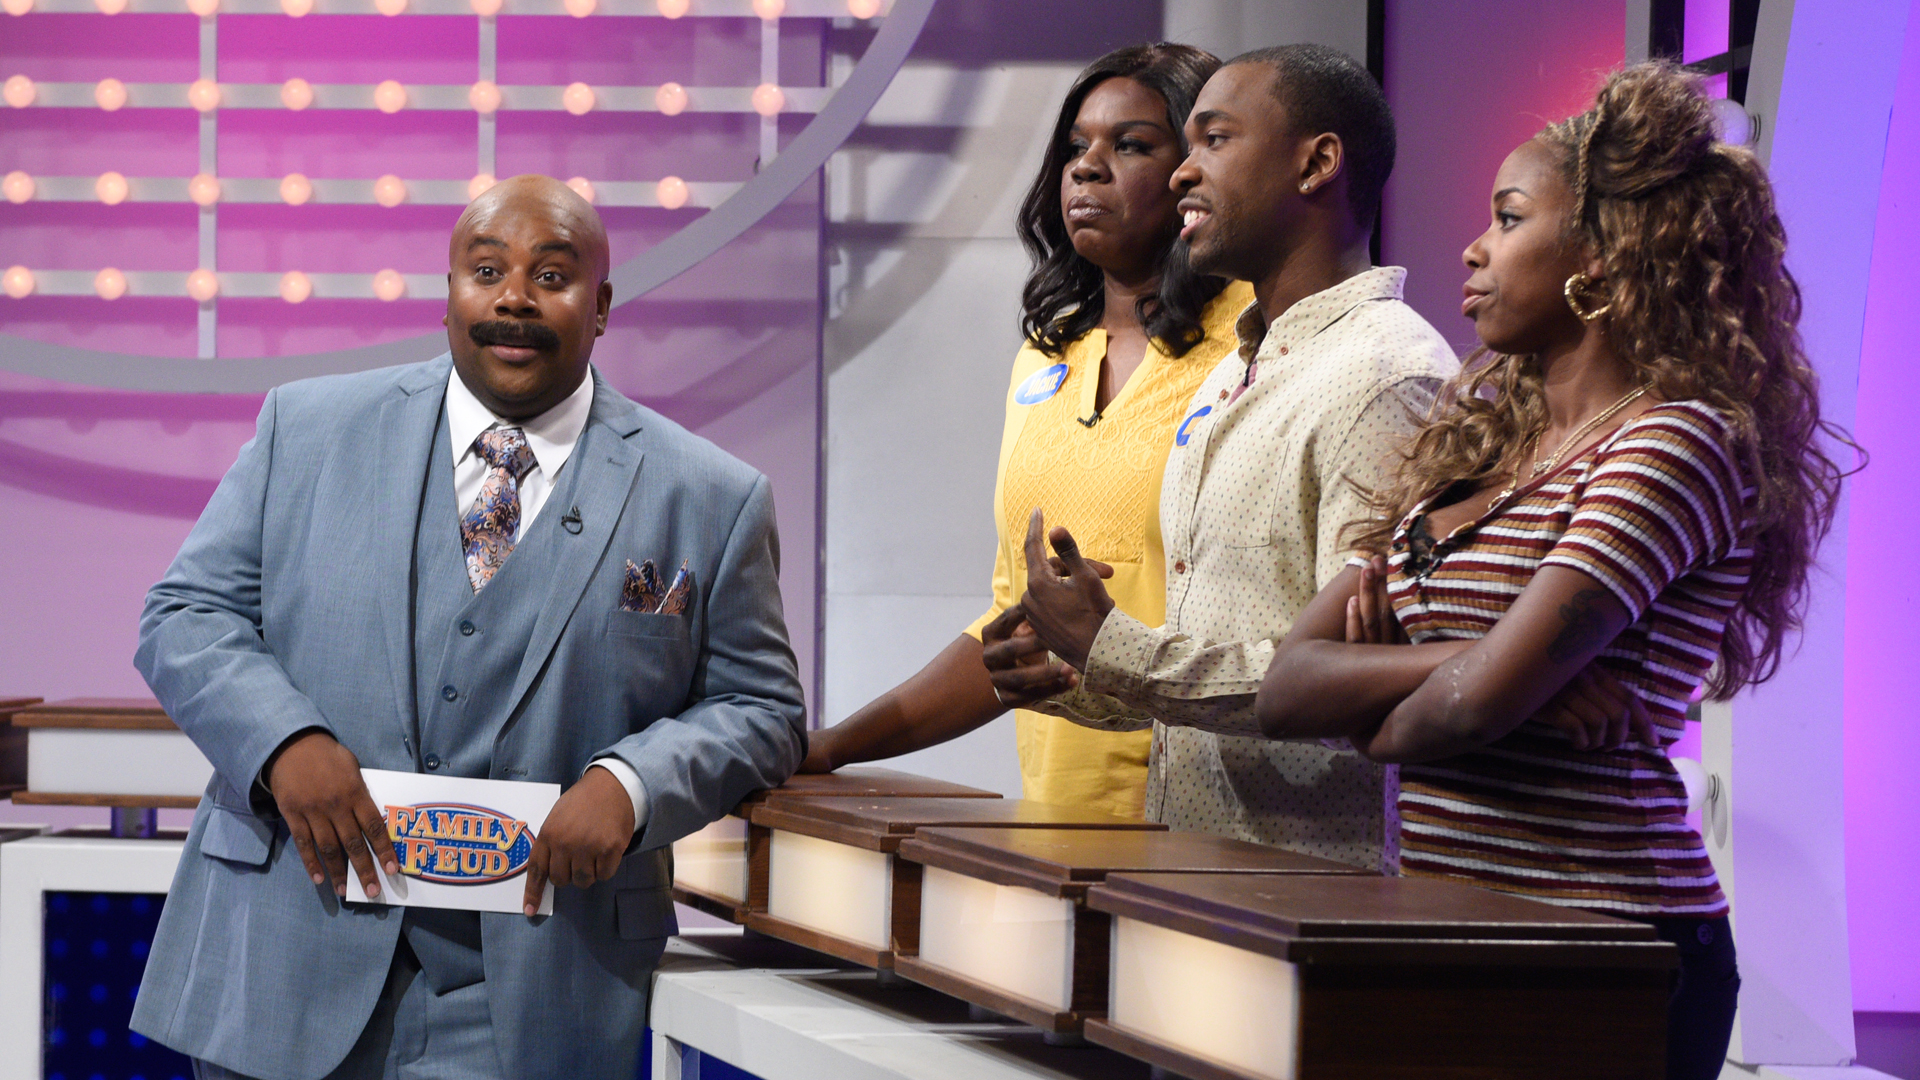 a family feud Survey says: play the family feud with your friends.